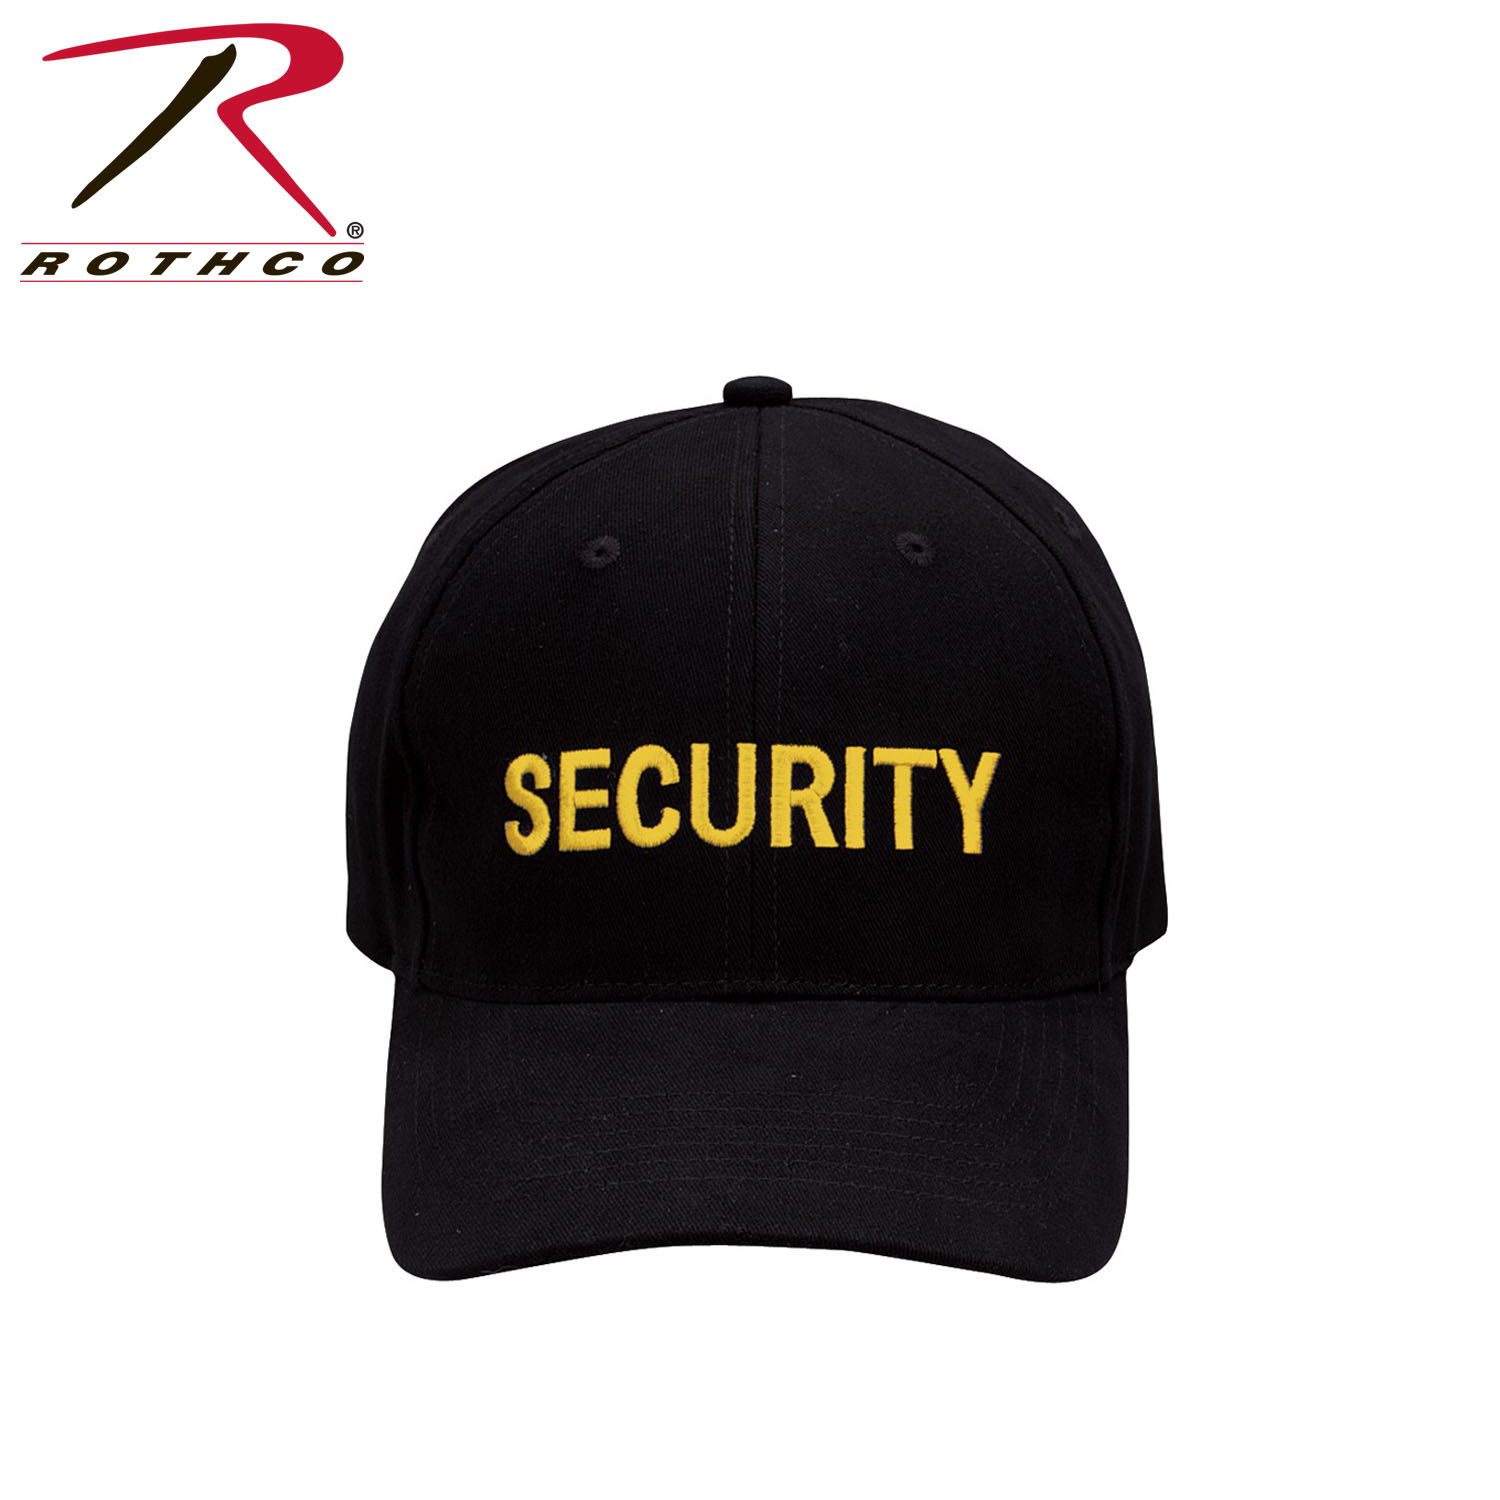 ae23c75c Rothco Security Supreme Low Profile Insignia Cap